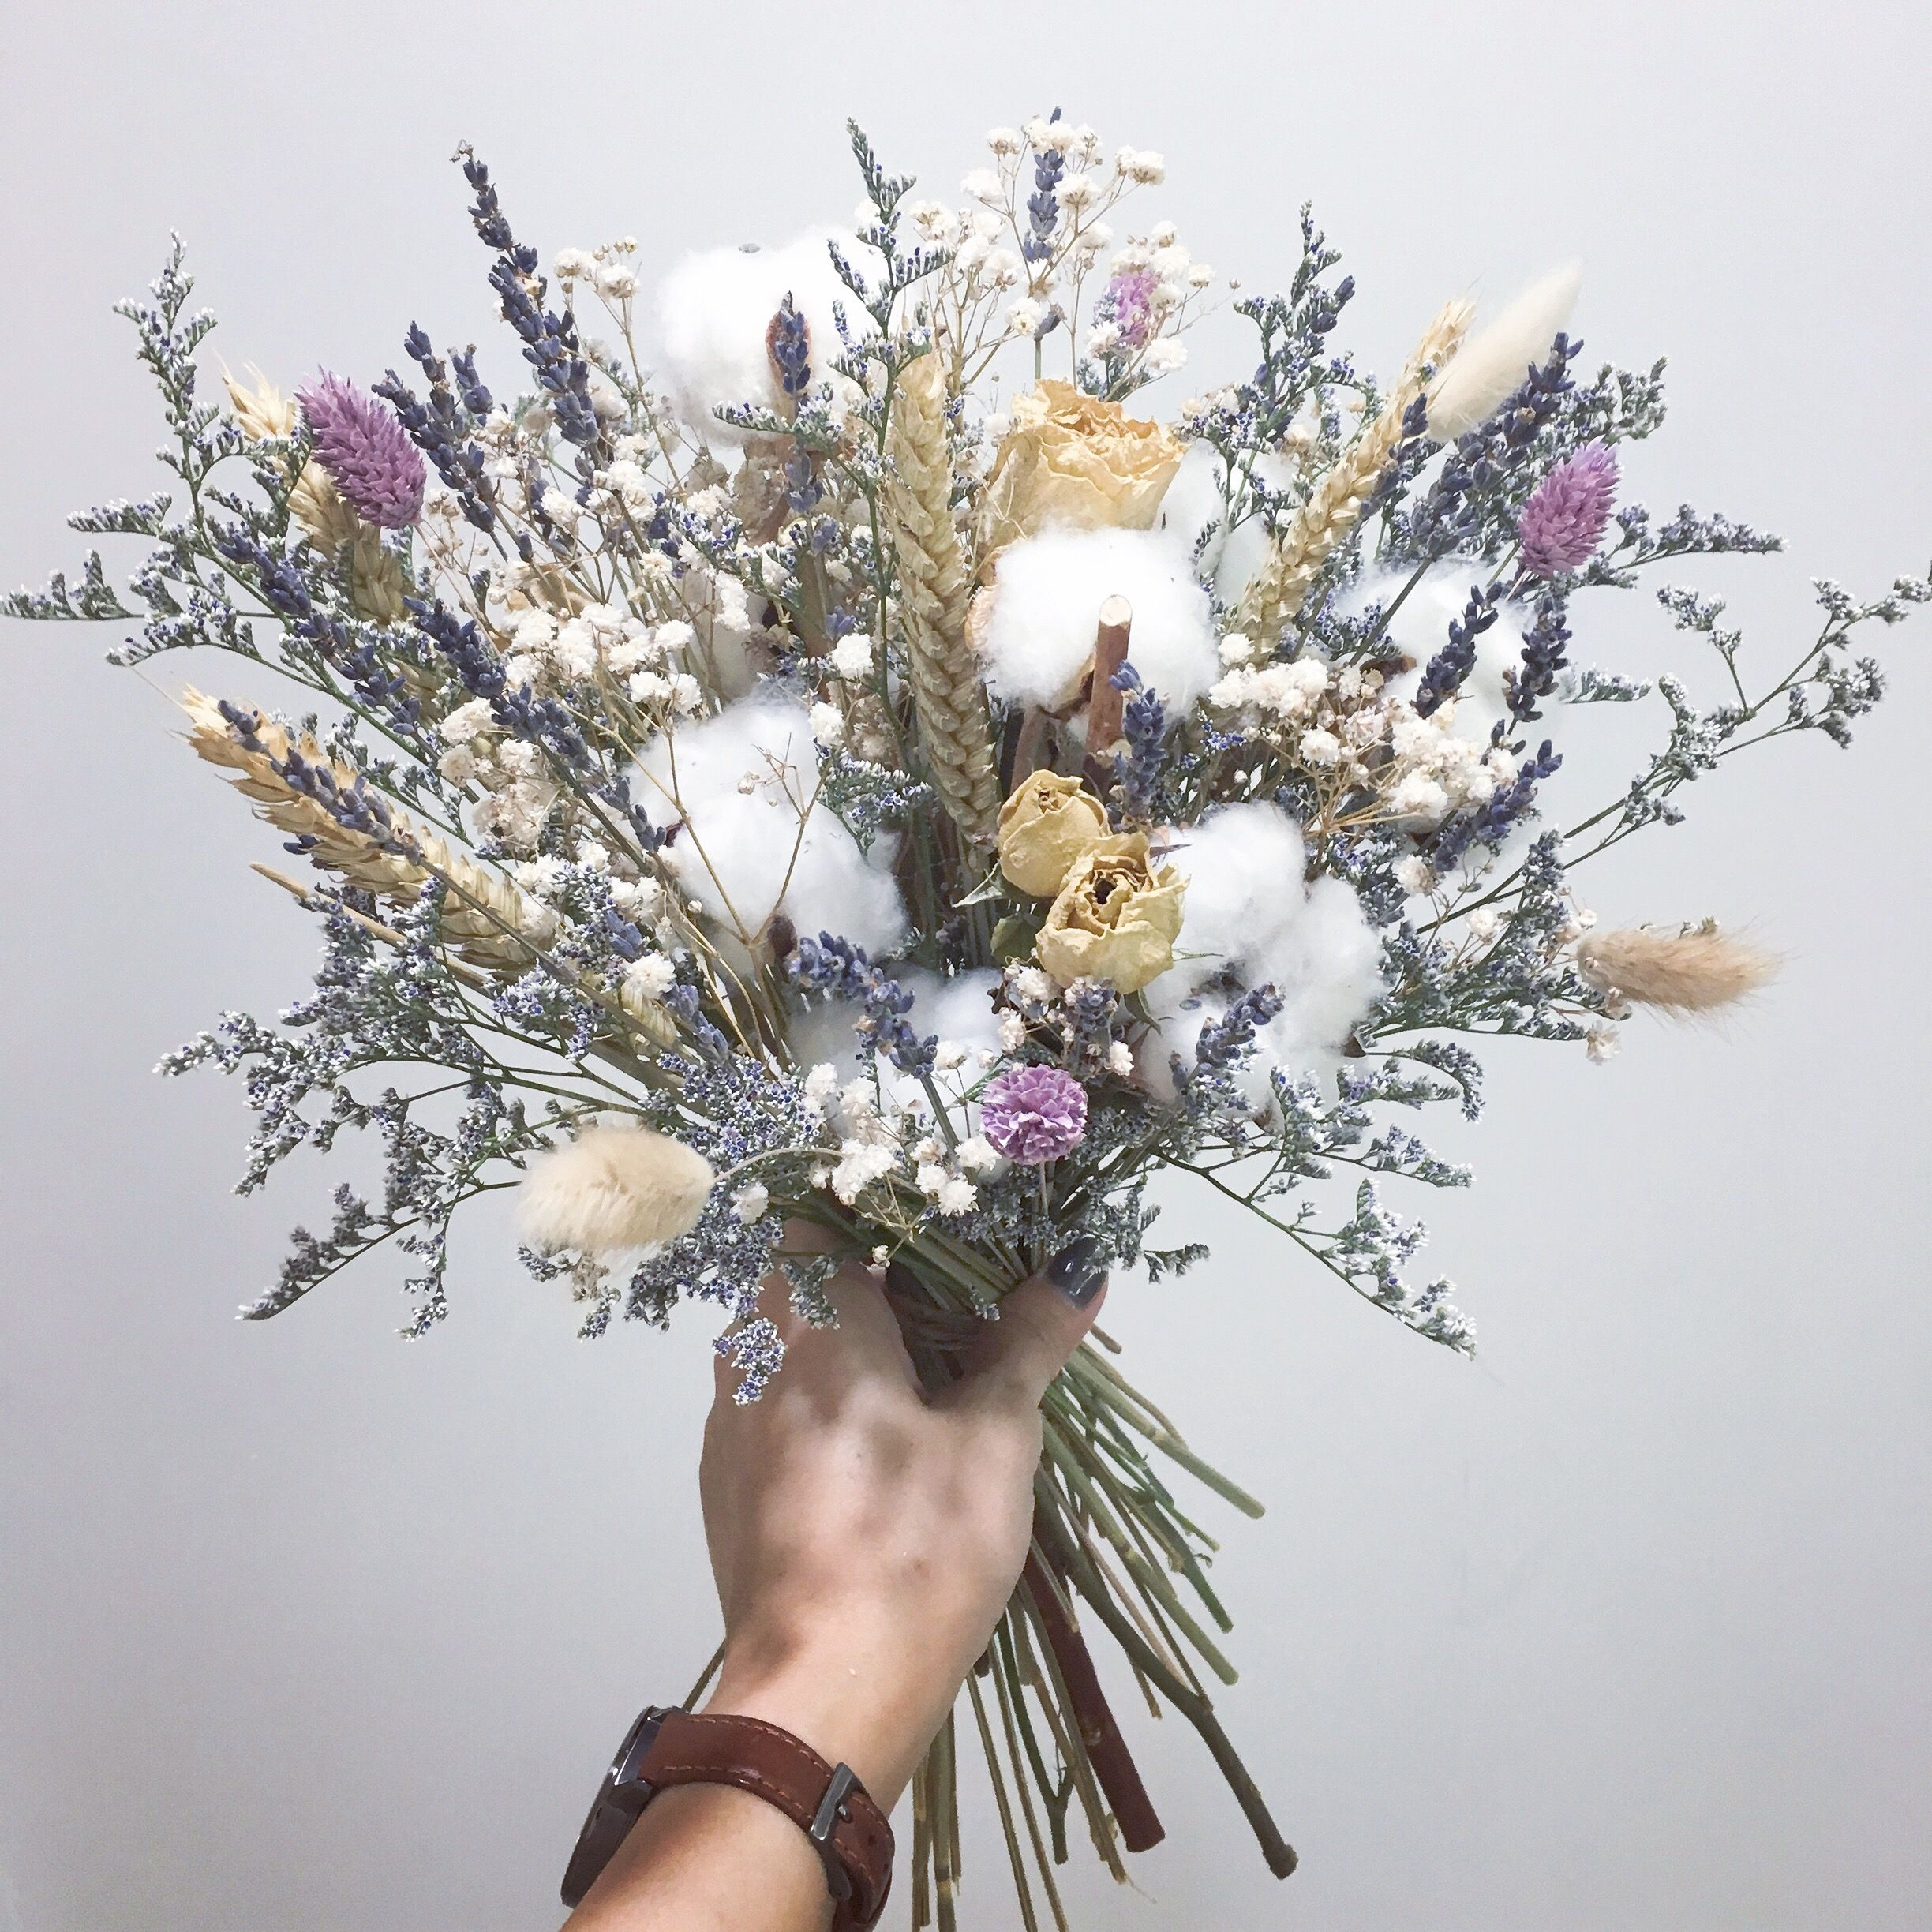 Dried Flowers Bridal Bouquet With Cotton And Lavender Dried Flower Bouquet Wedding Dried Flower Bouquet Dried Flowers